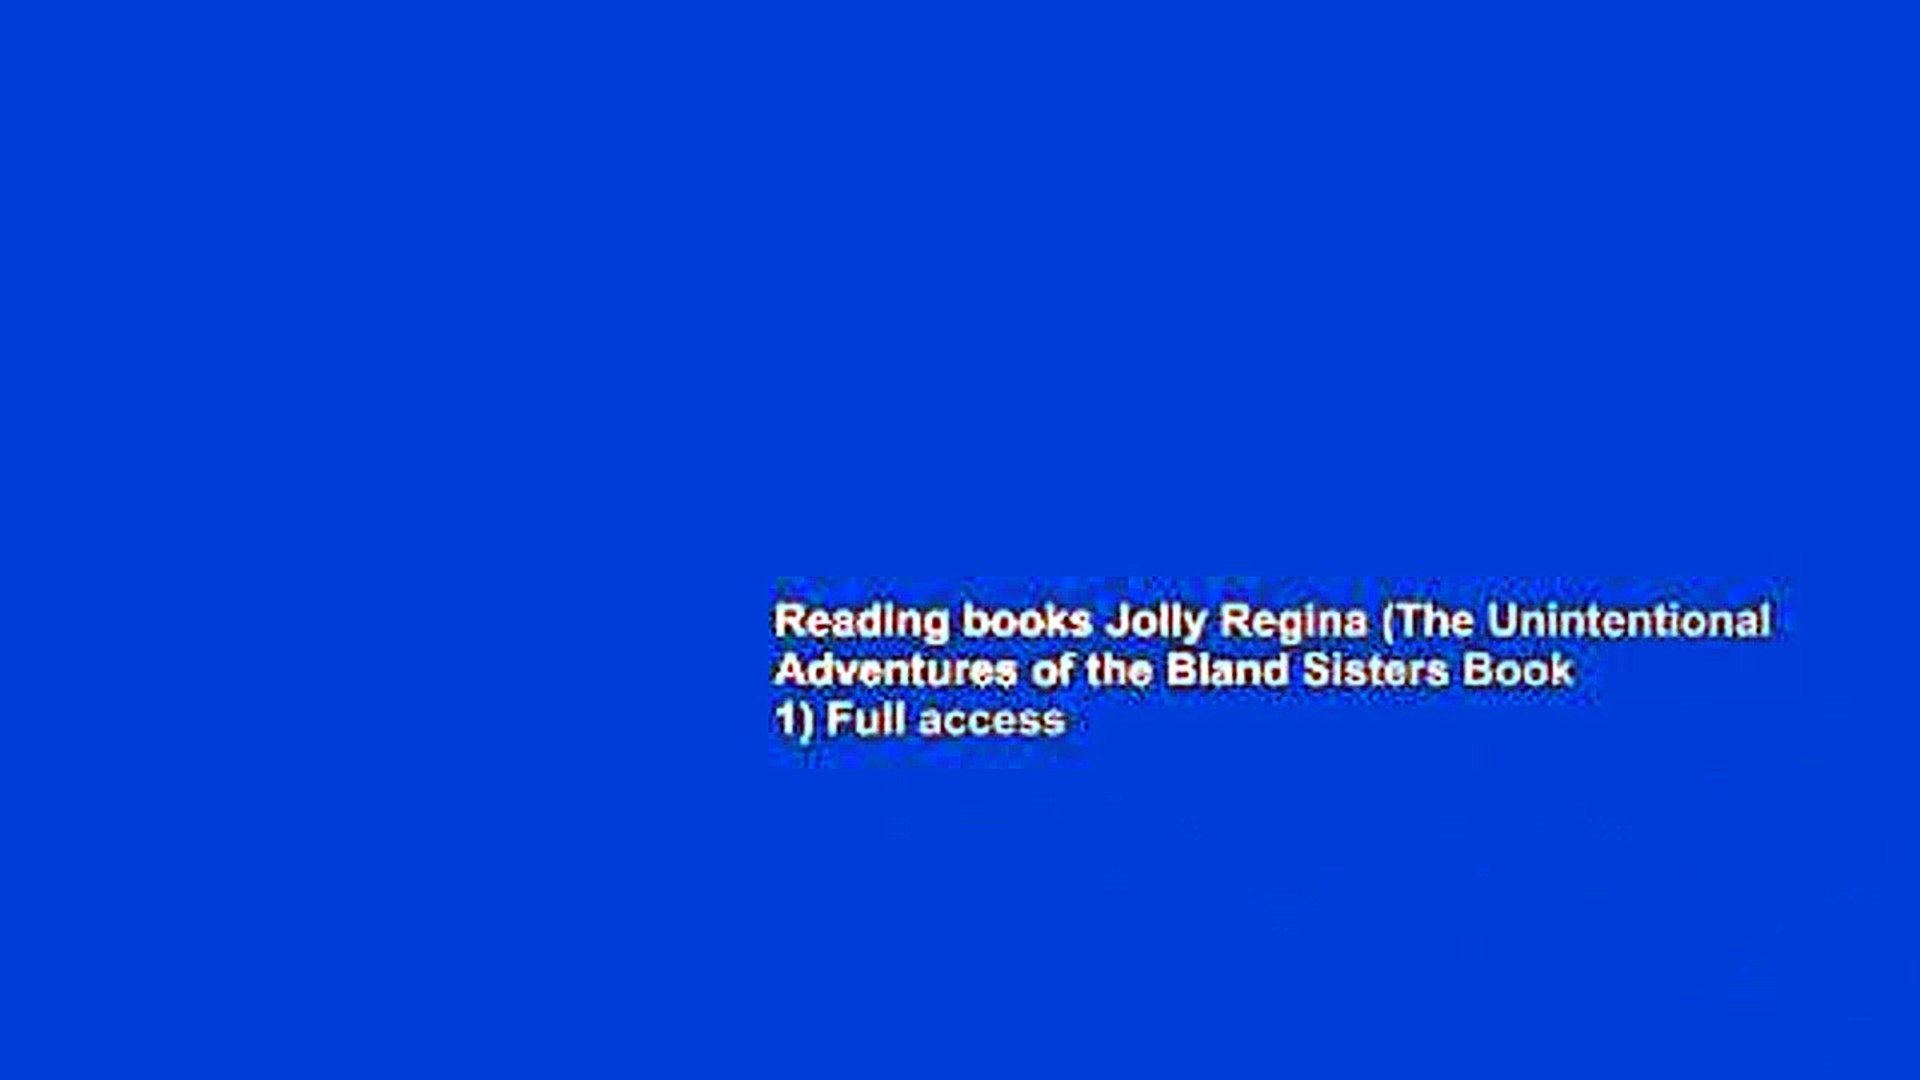 Reading books Jolly Regina (The Unintentional Adventures of the Bland Sisters Book 1) Full access